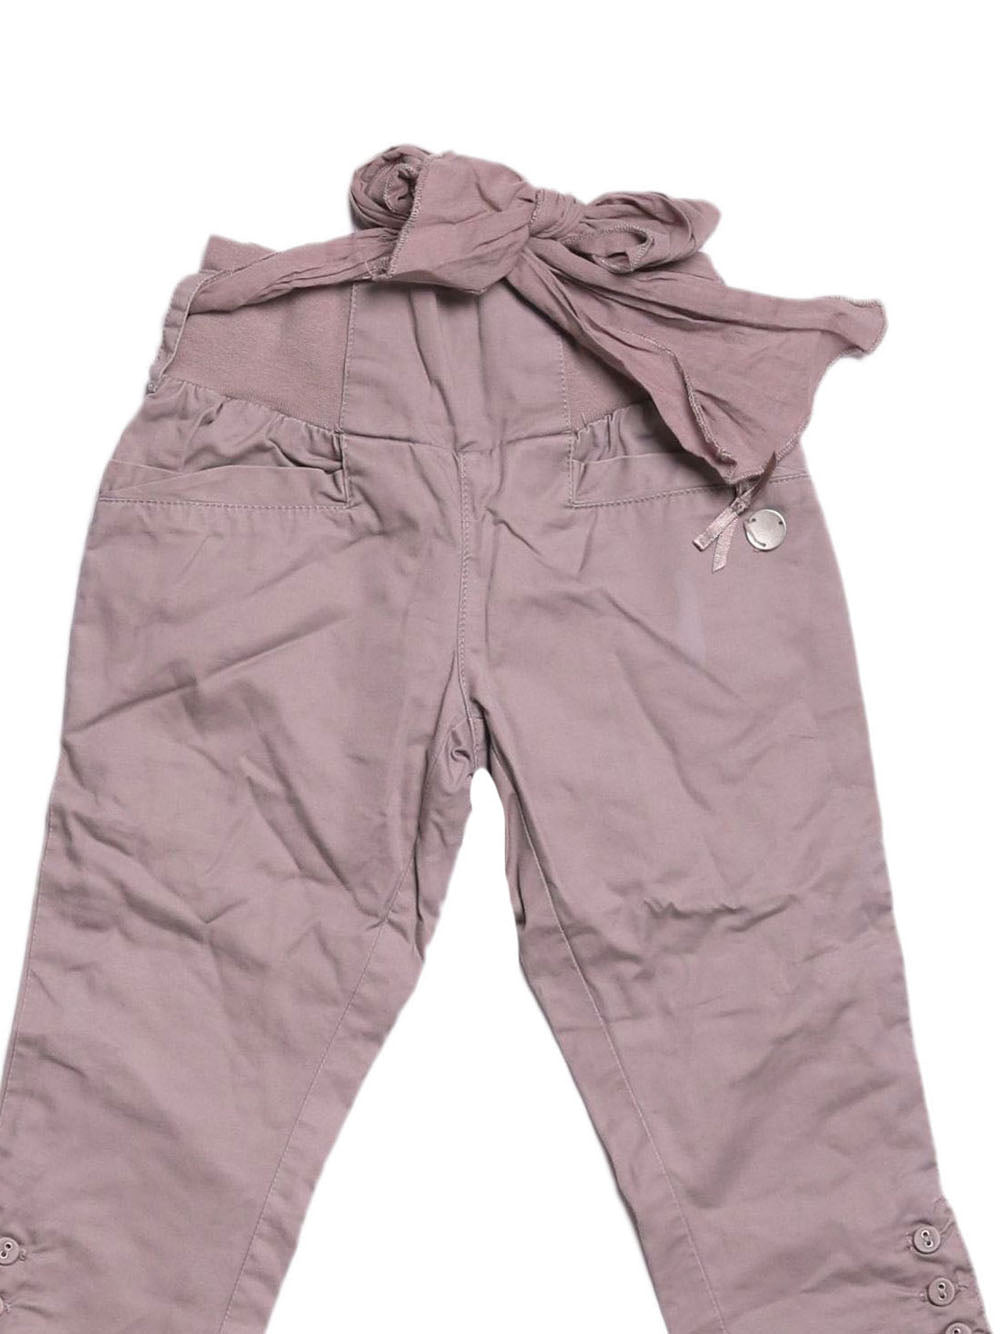 Detail photo of Preloved Chicco Beige Girl's trousers - size 12-18 mths